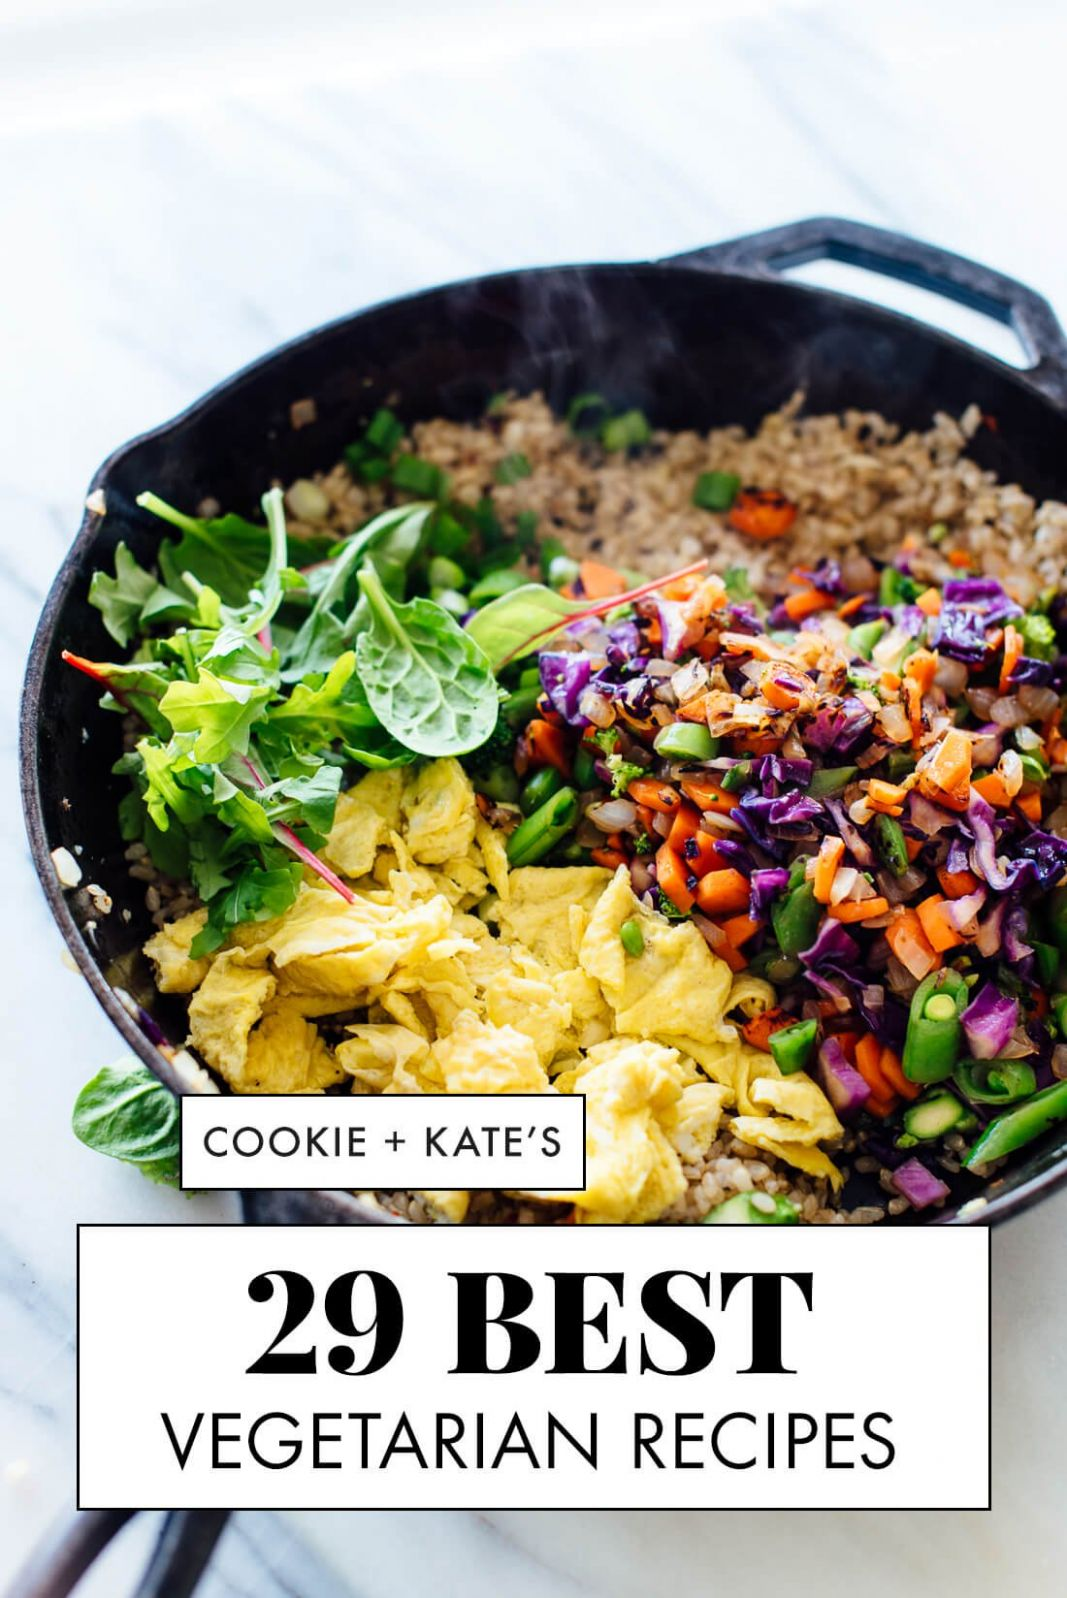 10 Best Vegetarian Recipes - Cookie and Kate